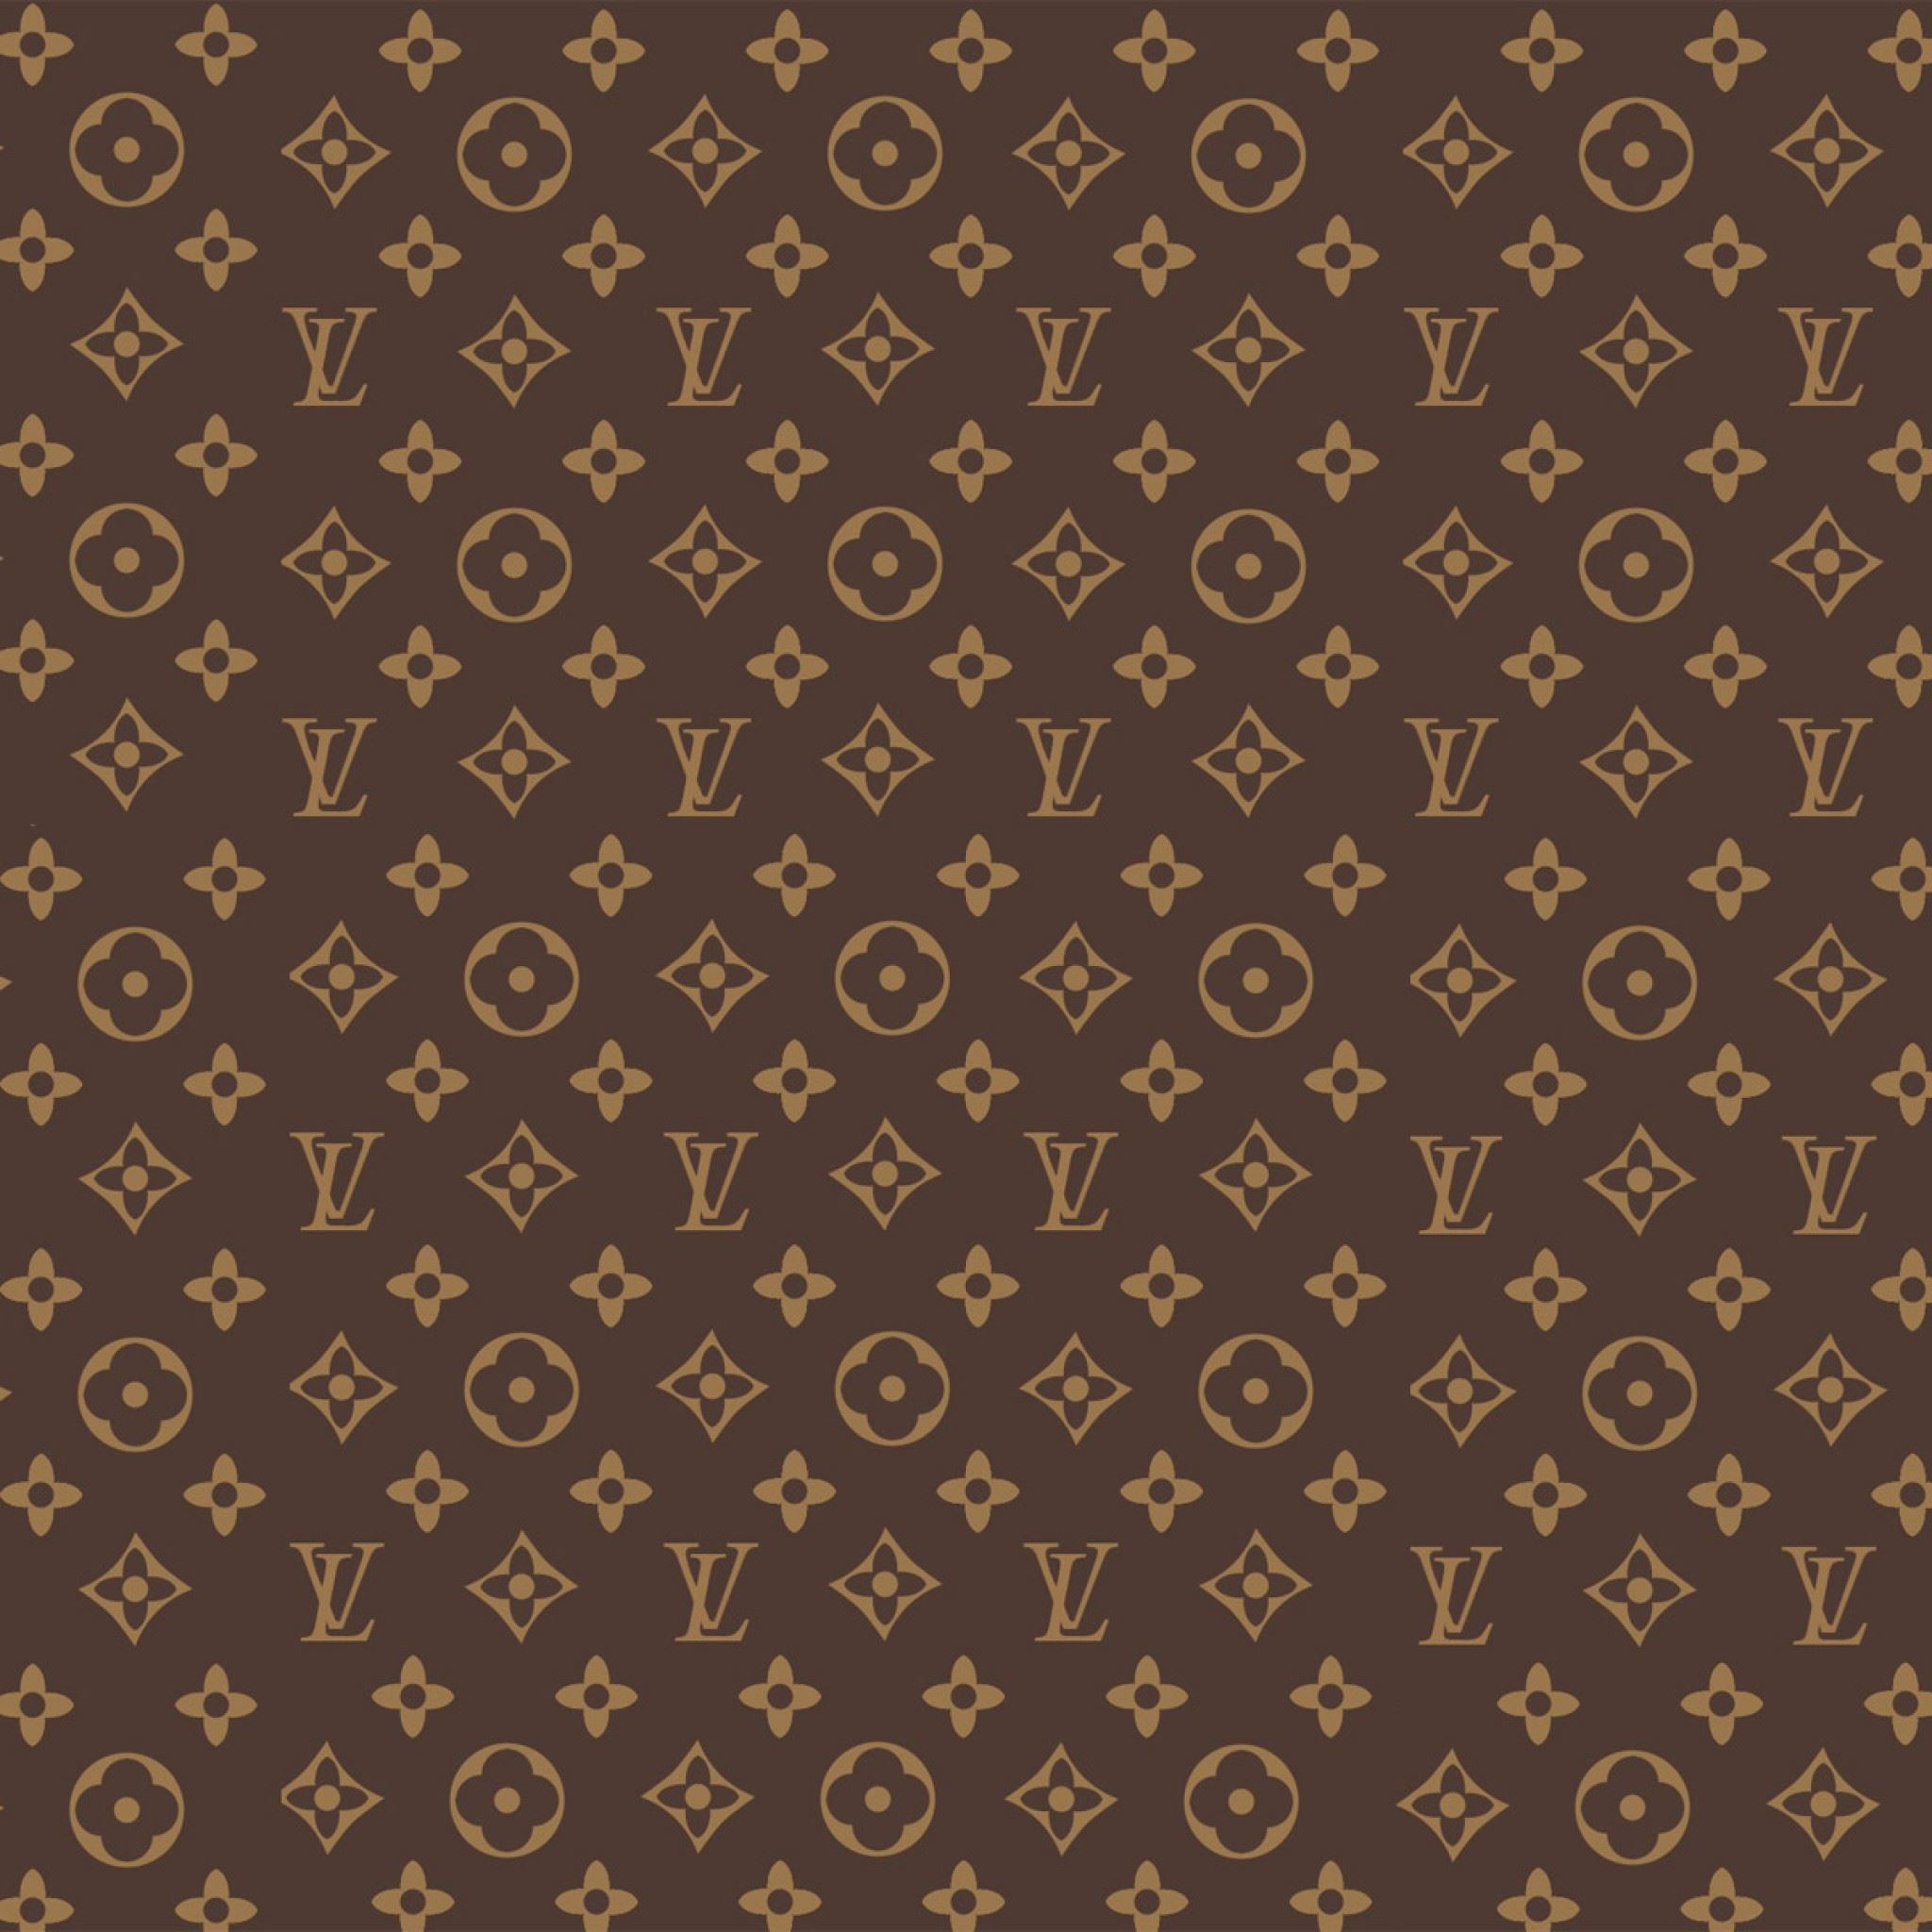 Louis Vuitton Print iPad Air wallpaper